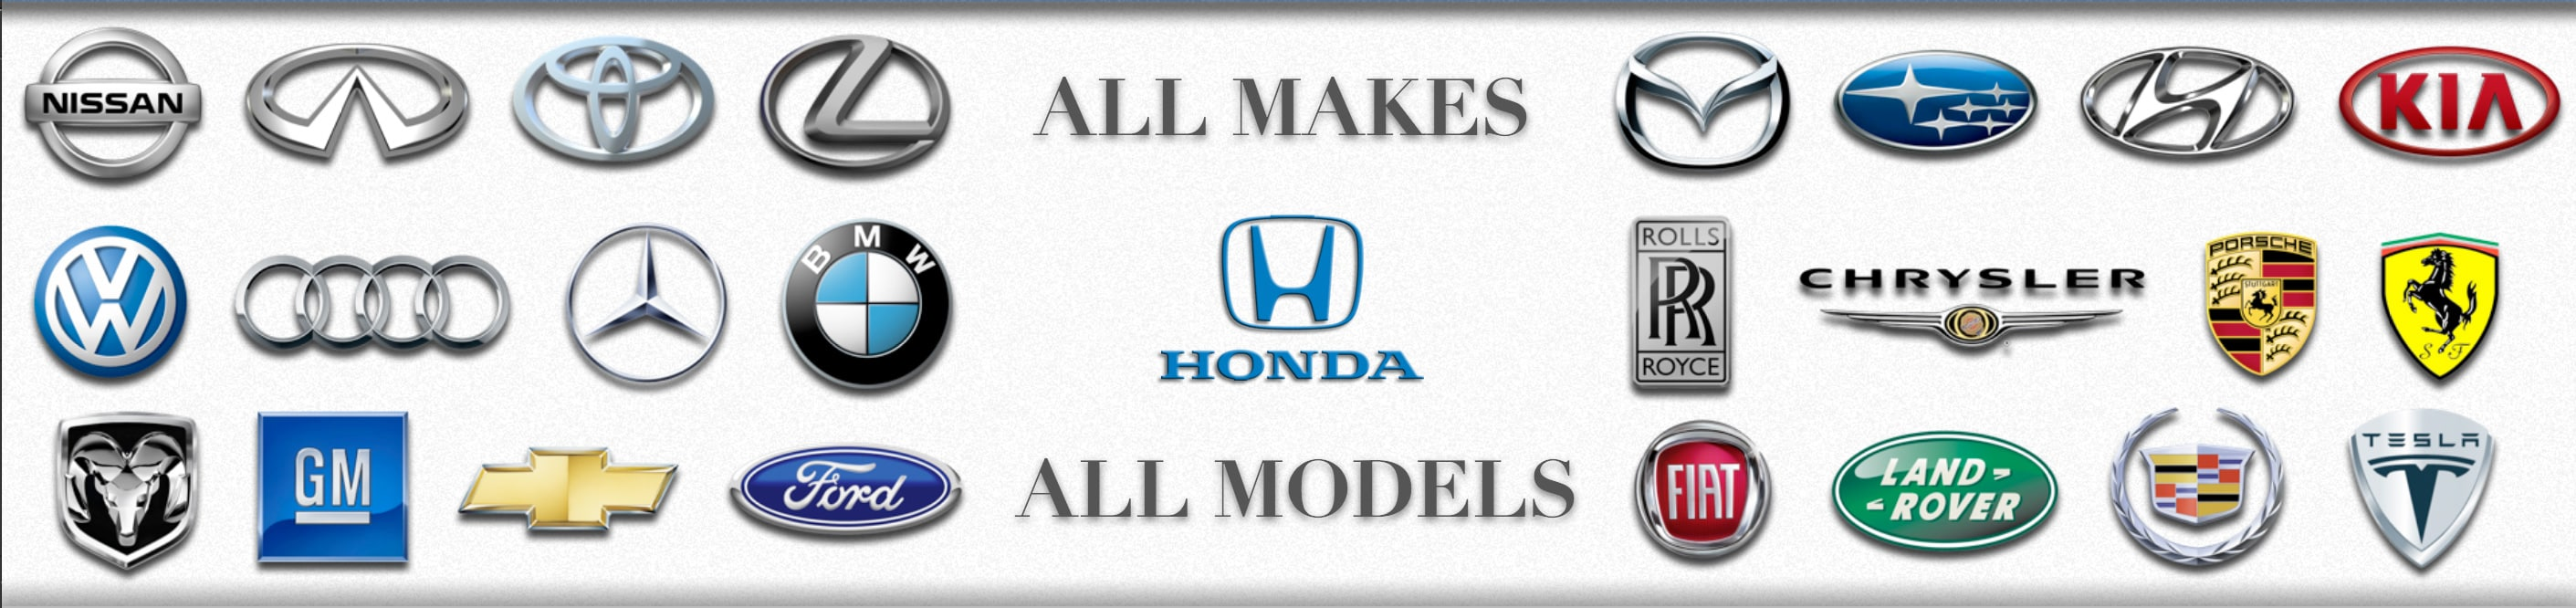 Honda Check Engine Light And Diagnostics In Spokane Larry H Mercedes Benz Have A Not Quite Sure What It Means This Is Common Question Our Customers Ask Us Here At Miller Downtown